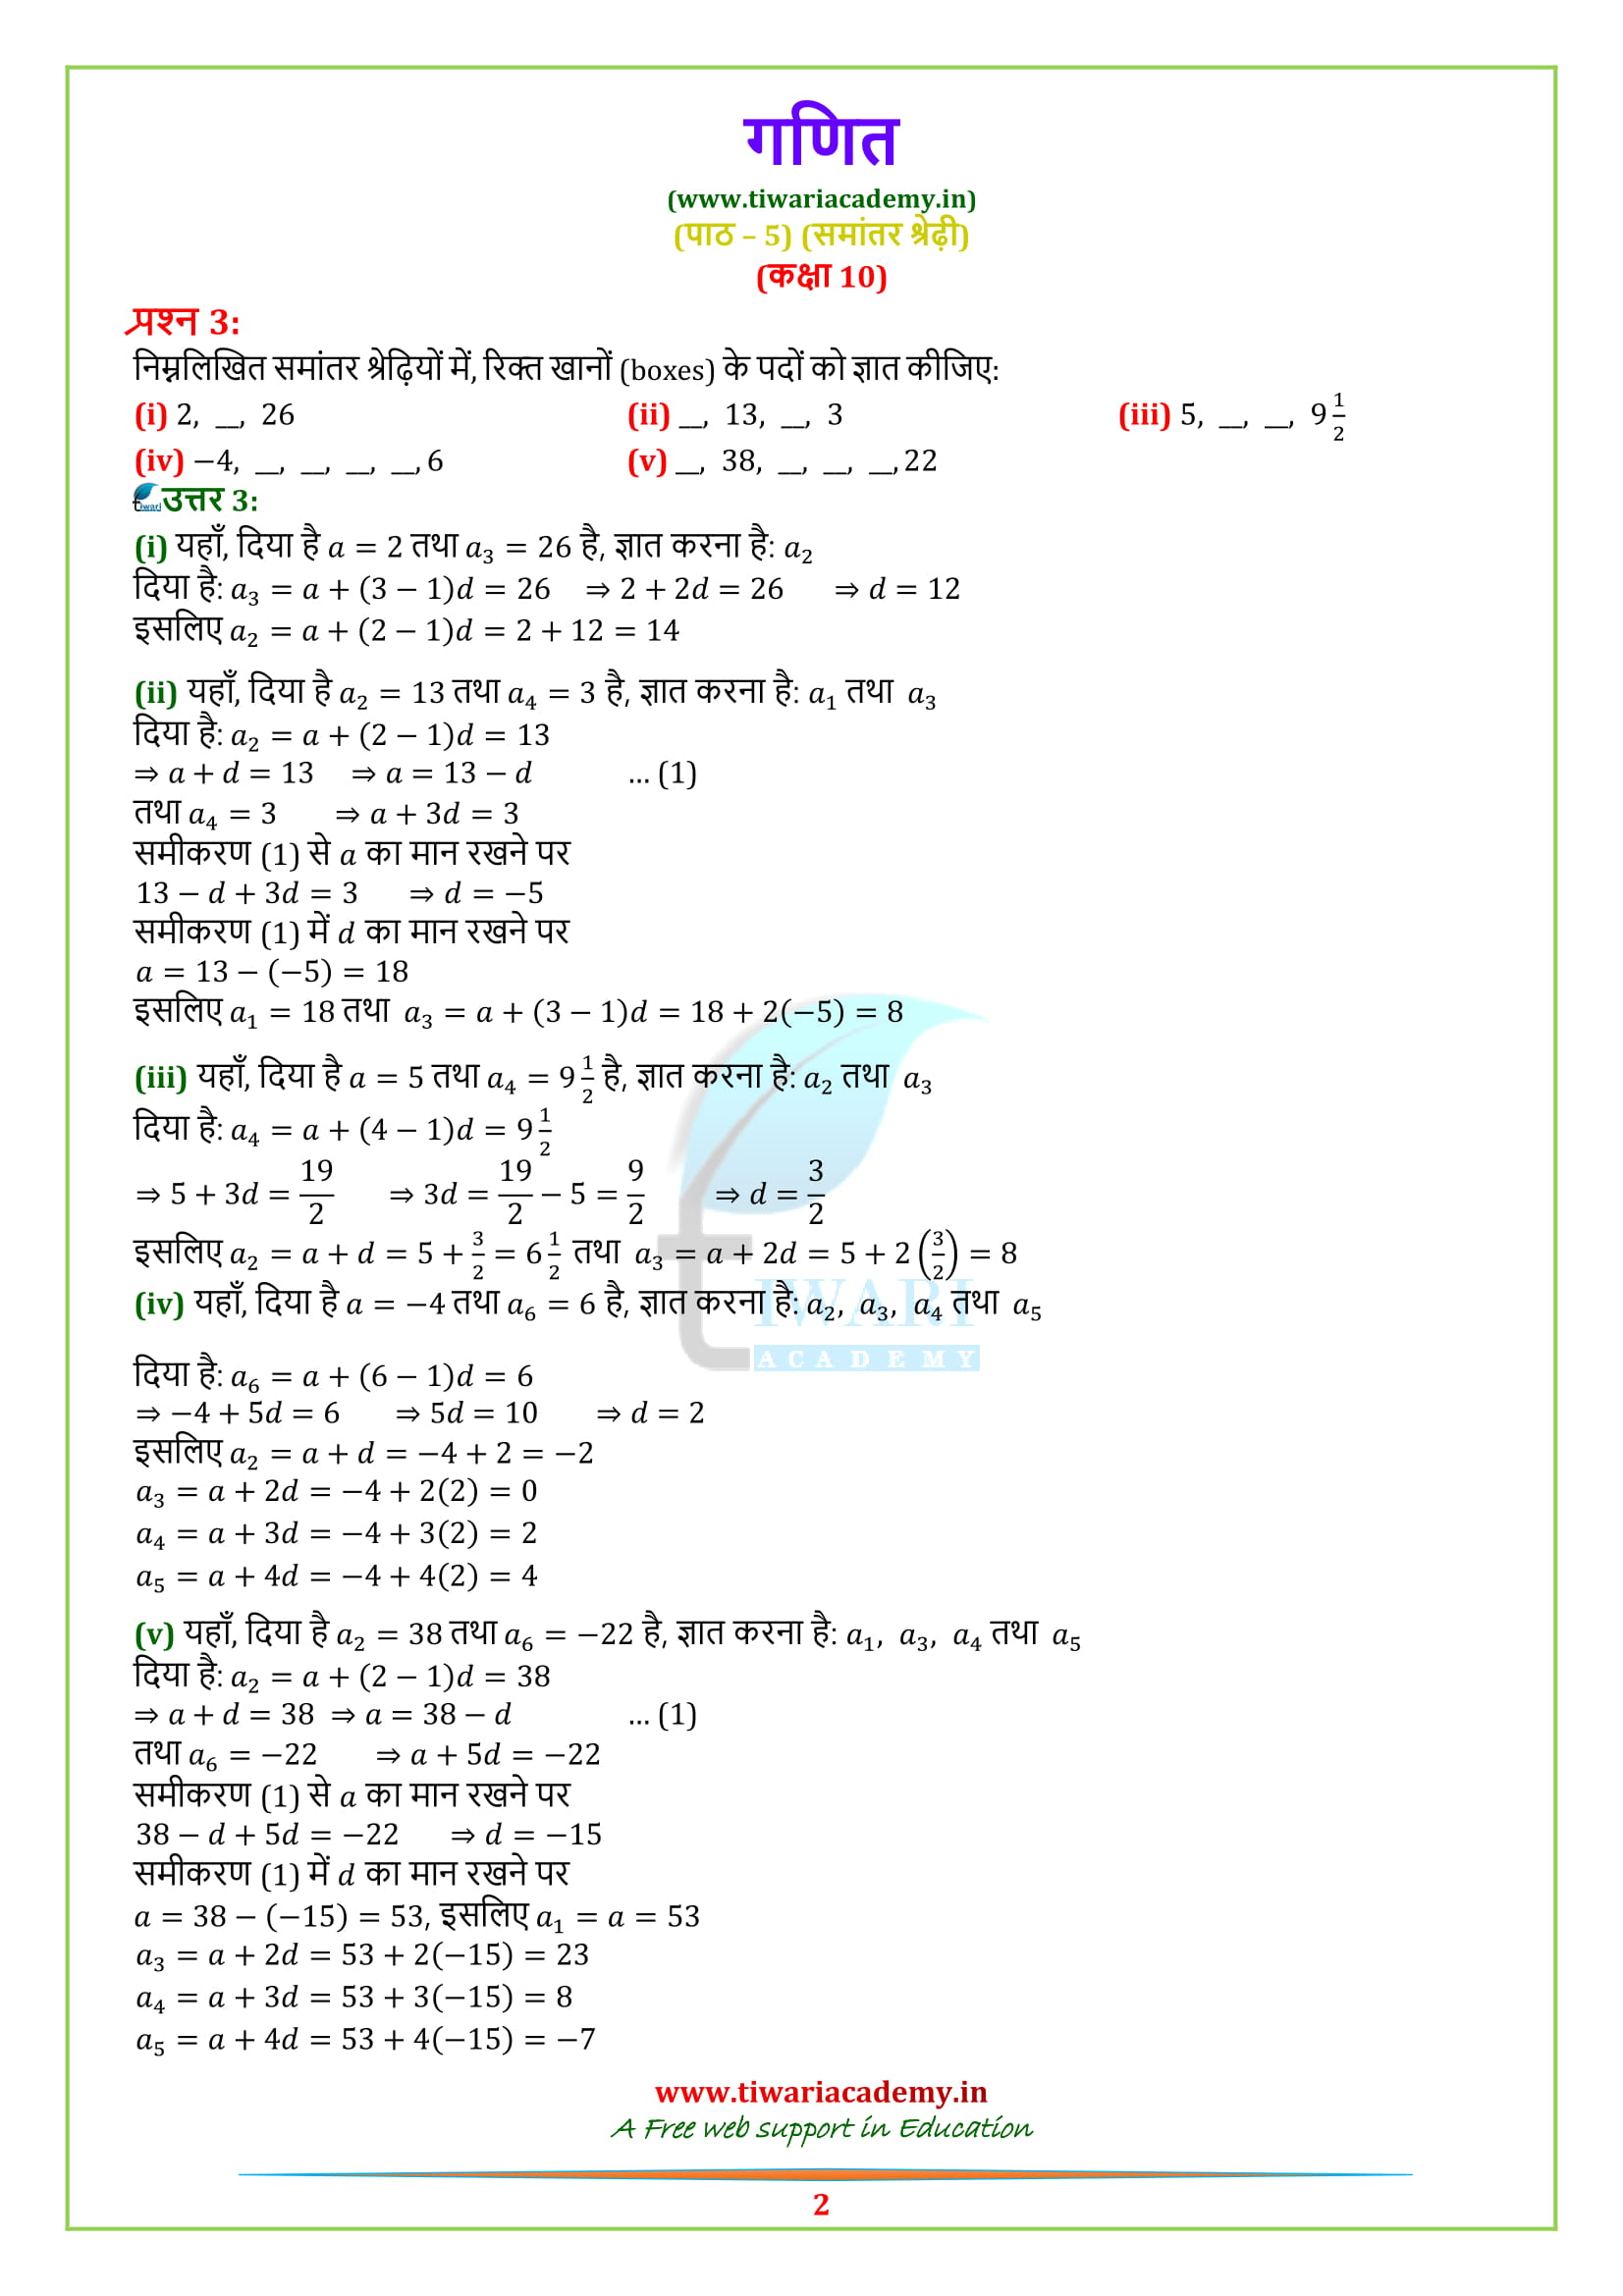 NCERT Solutions for Class 10 Maths exercise 5.2 in hindi medium